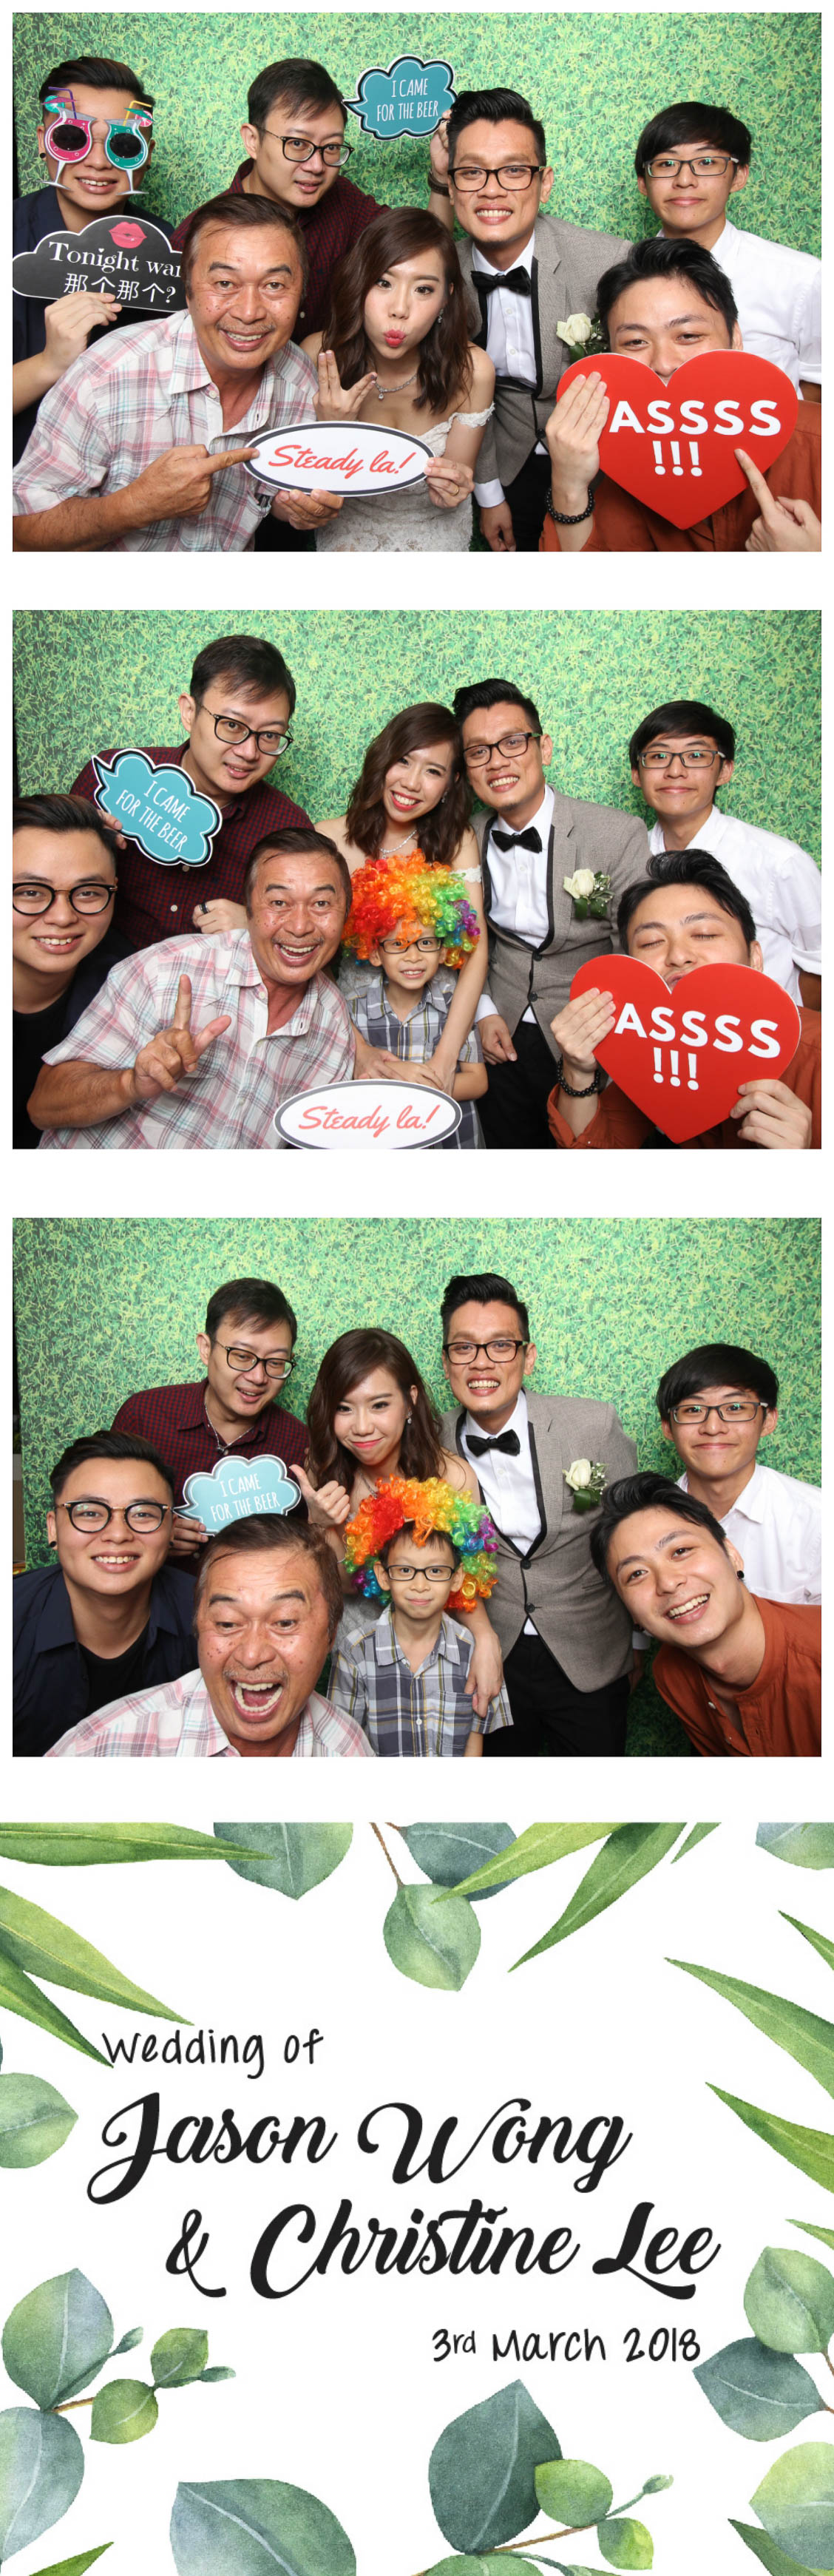 Photobooth 0302-27